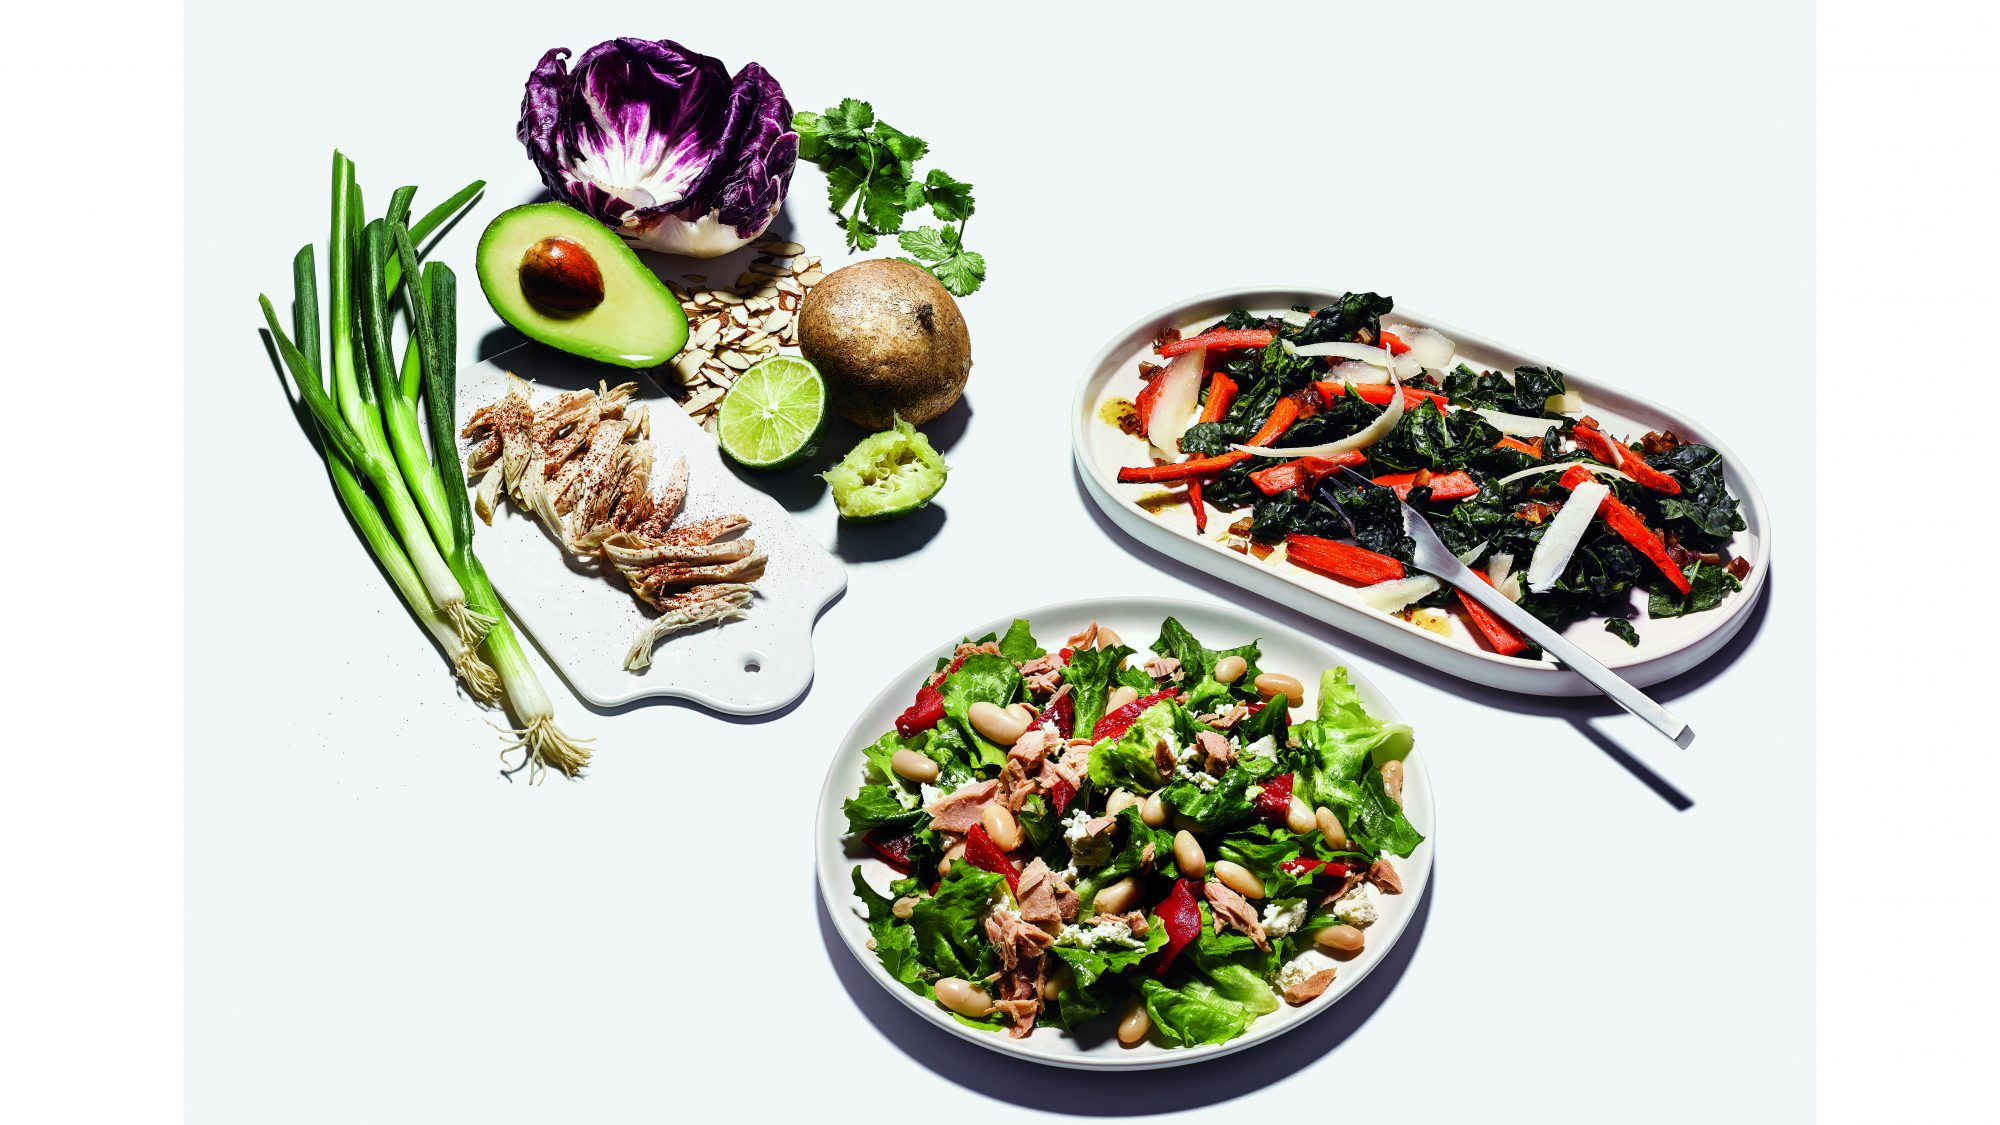 6 Protein-Packed Tuna Recipes for Sandwiches, Salads, and More